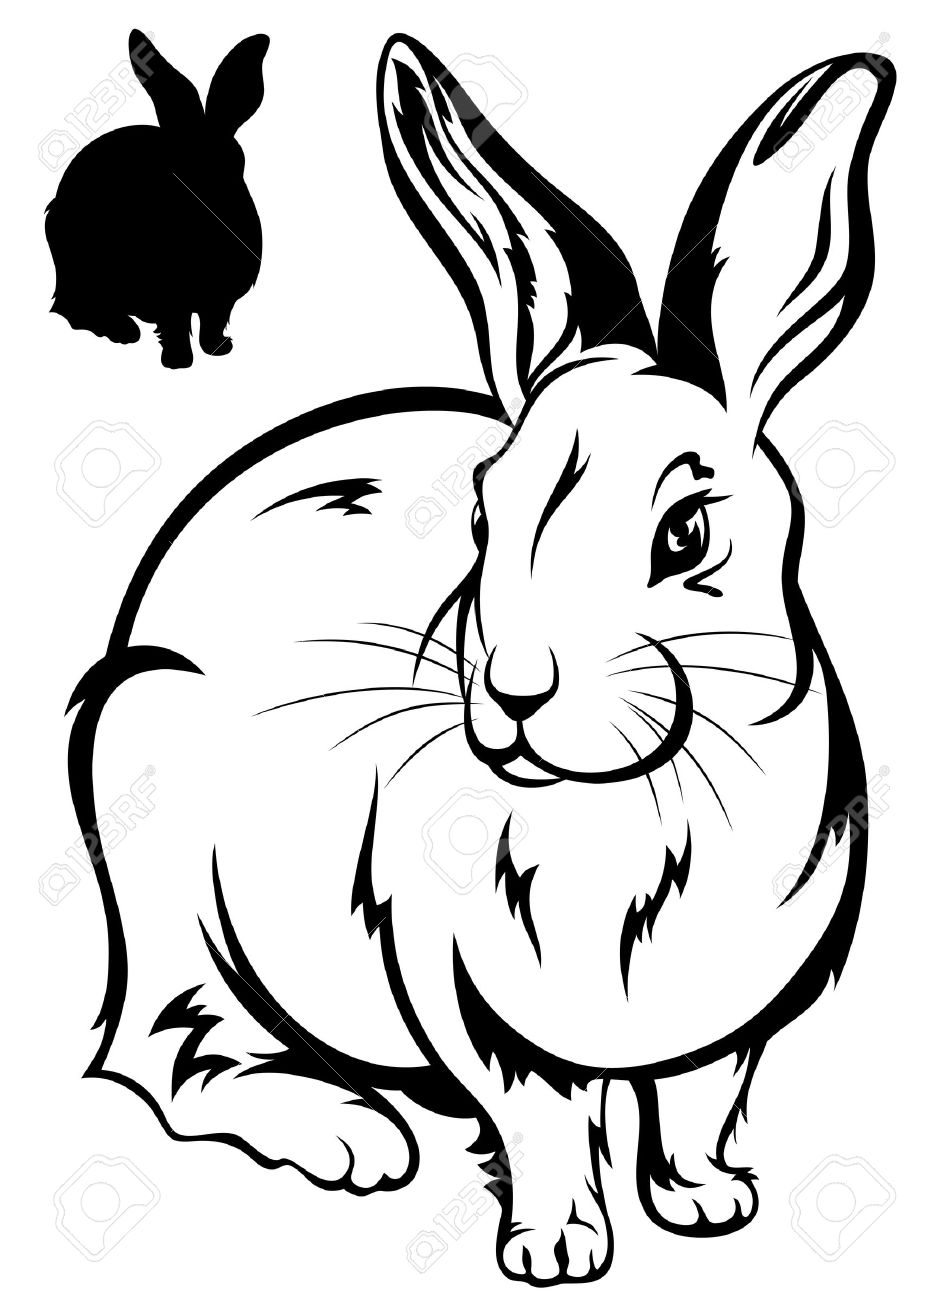 950x1300 Cute Rabbit Illustration